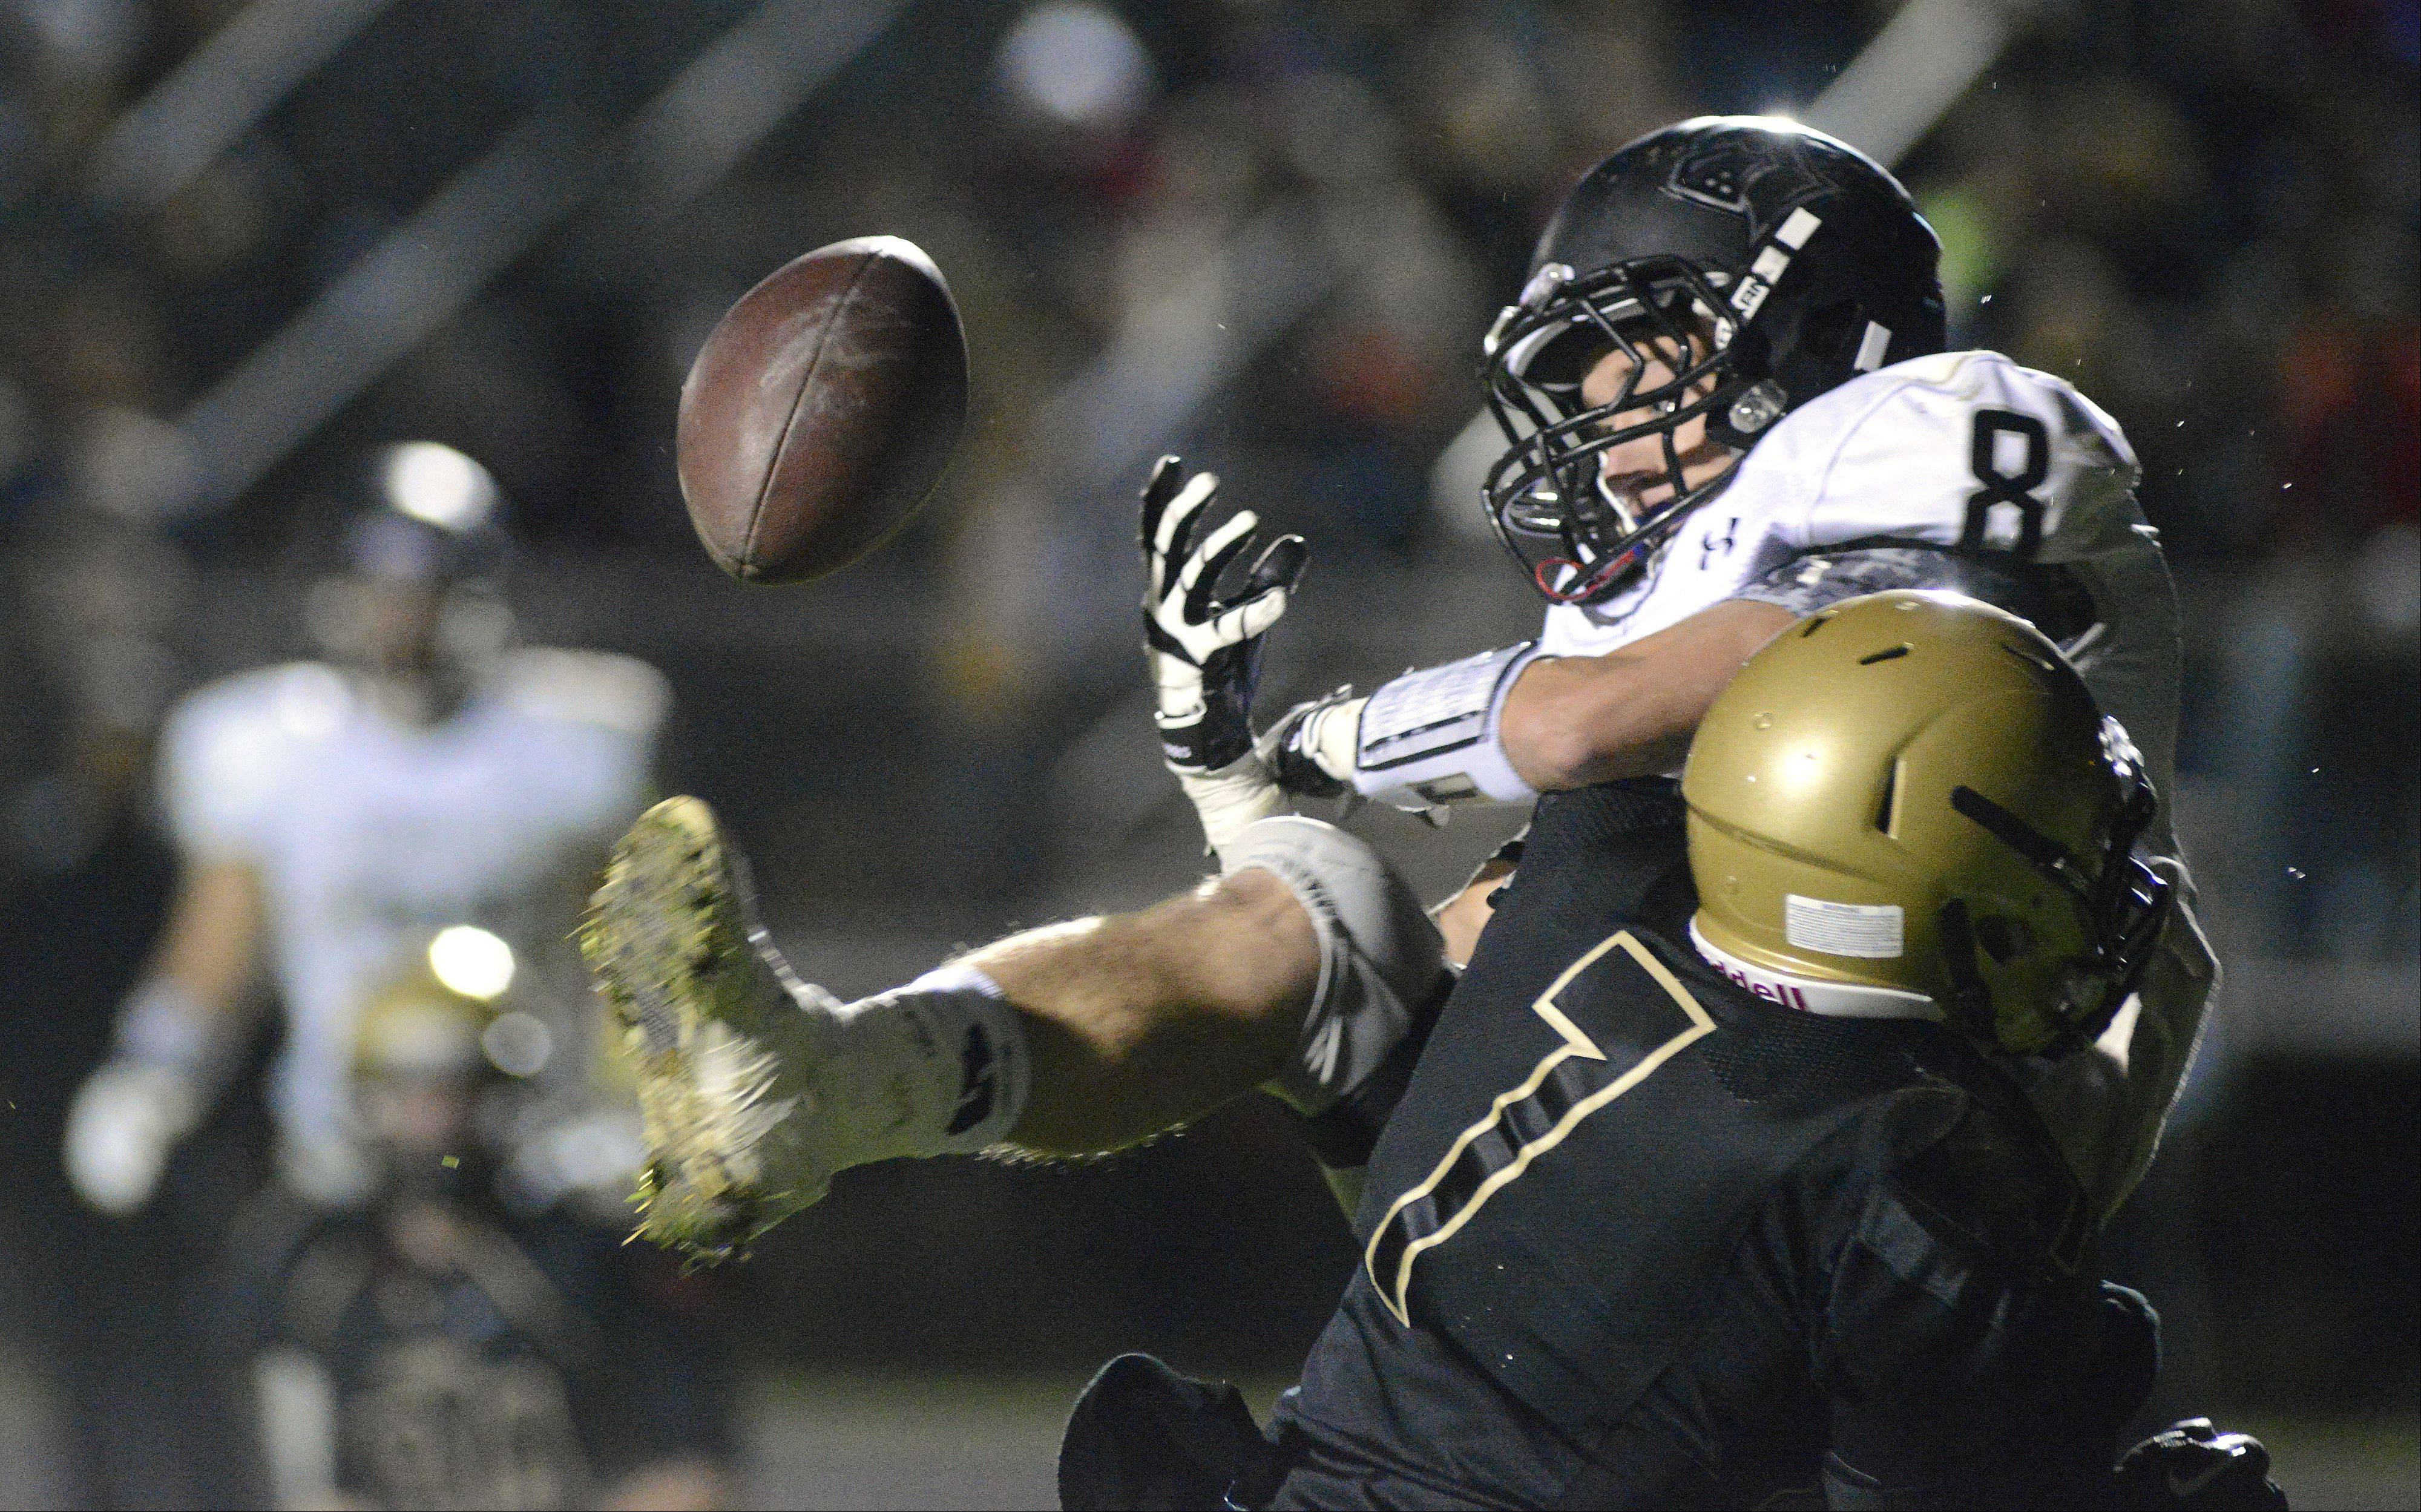 A pass is incomplete to Kaneland's Brandon Bishop in the end zone as he gets hit by Sycamore's Michael Stinnett in the second quarter.